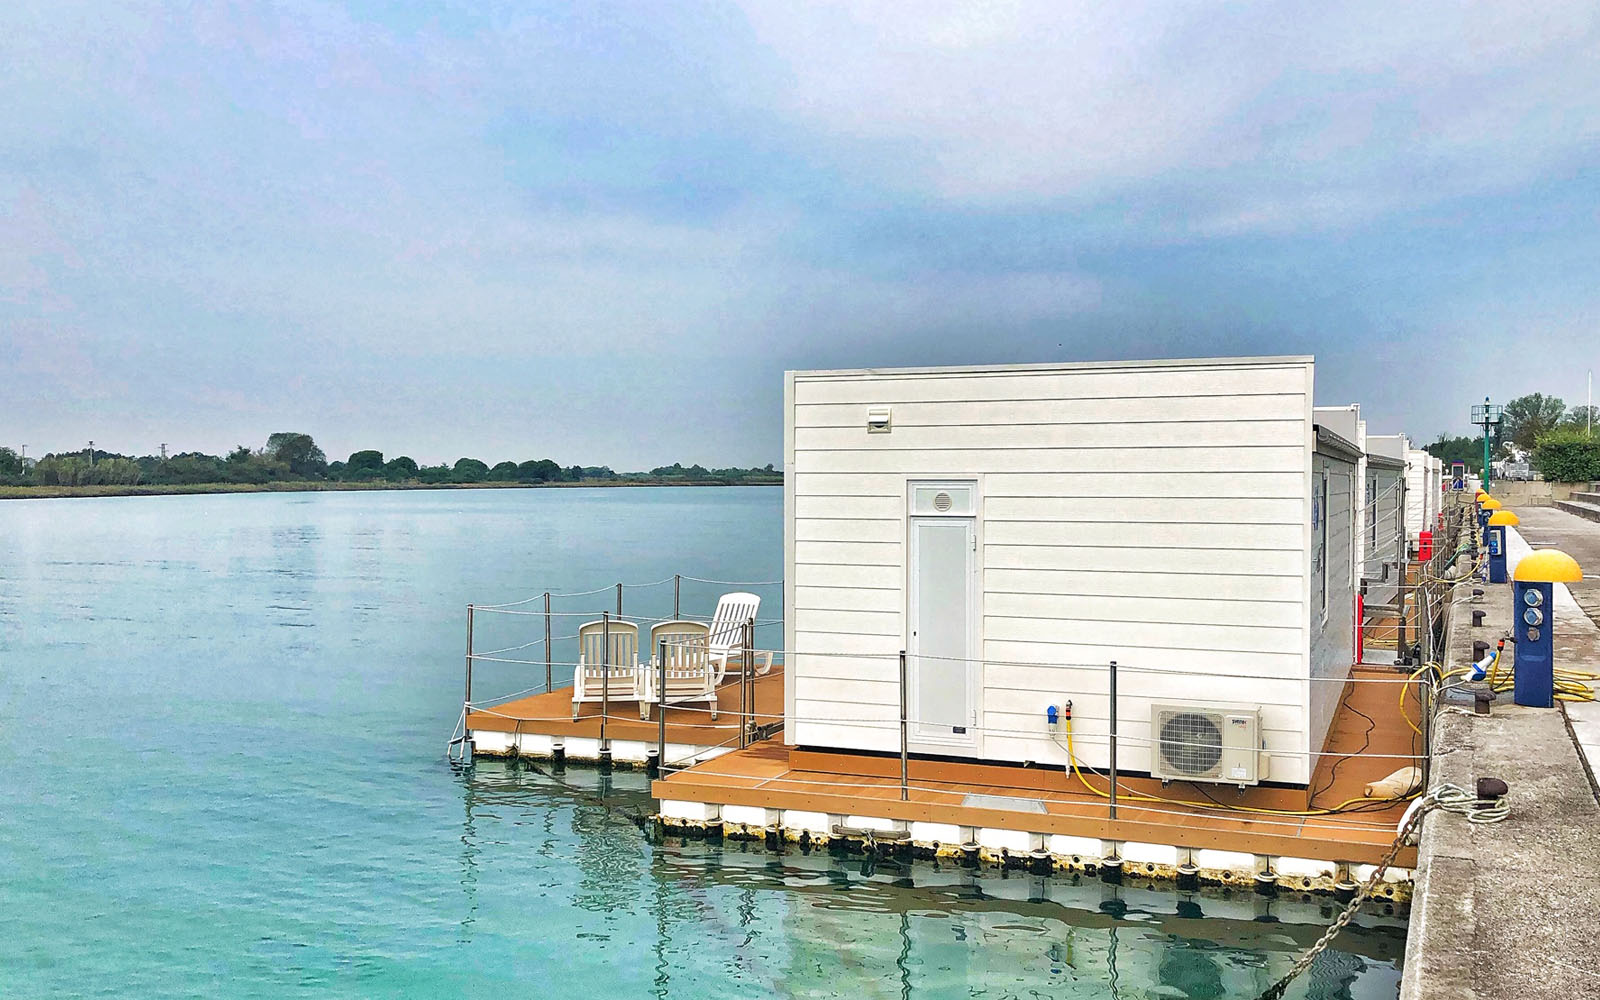 La case galleggianti del Floating Resort di Lignano.